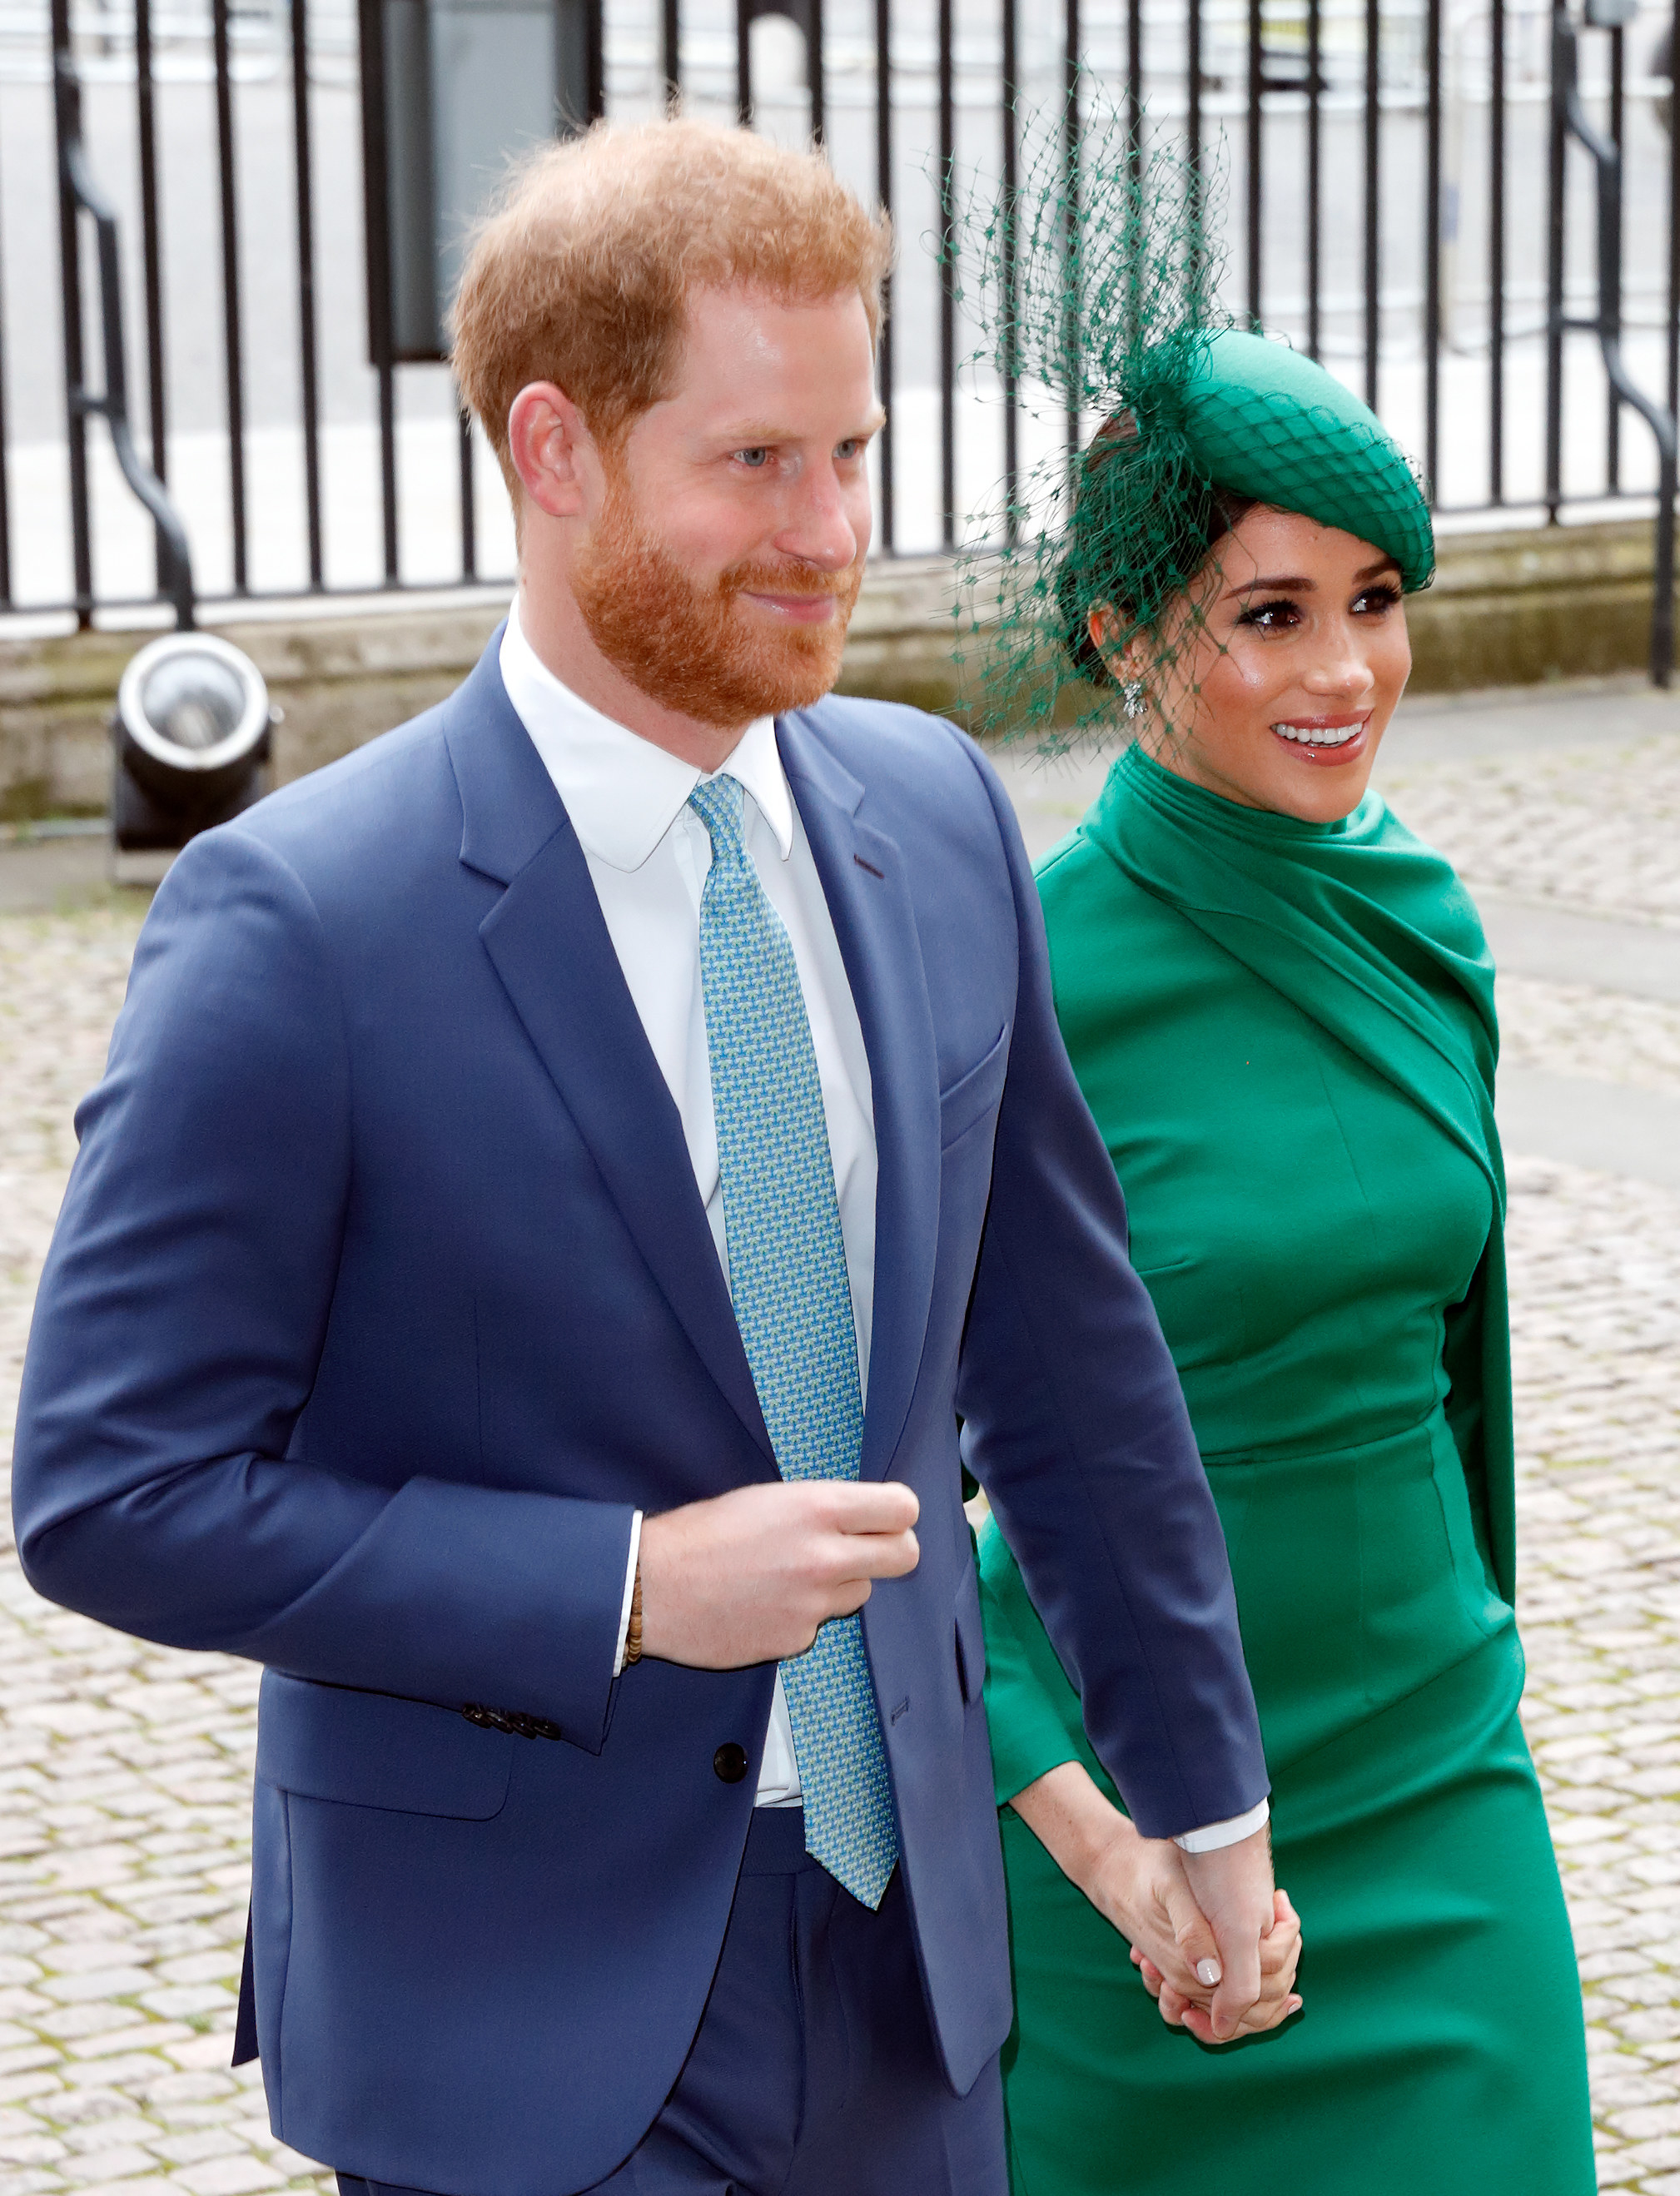 prince harry and meghan markle walking hand in hand